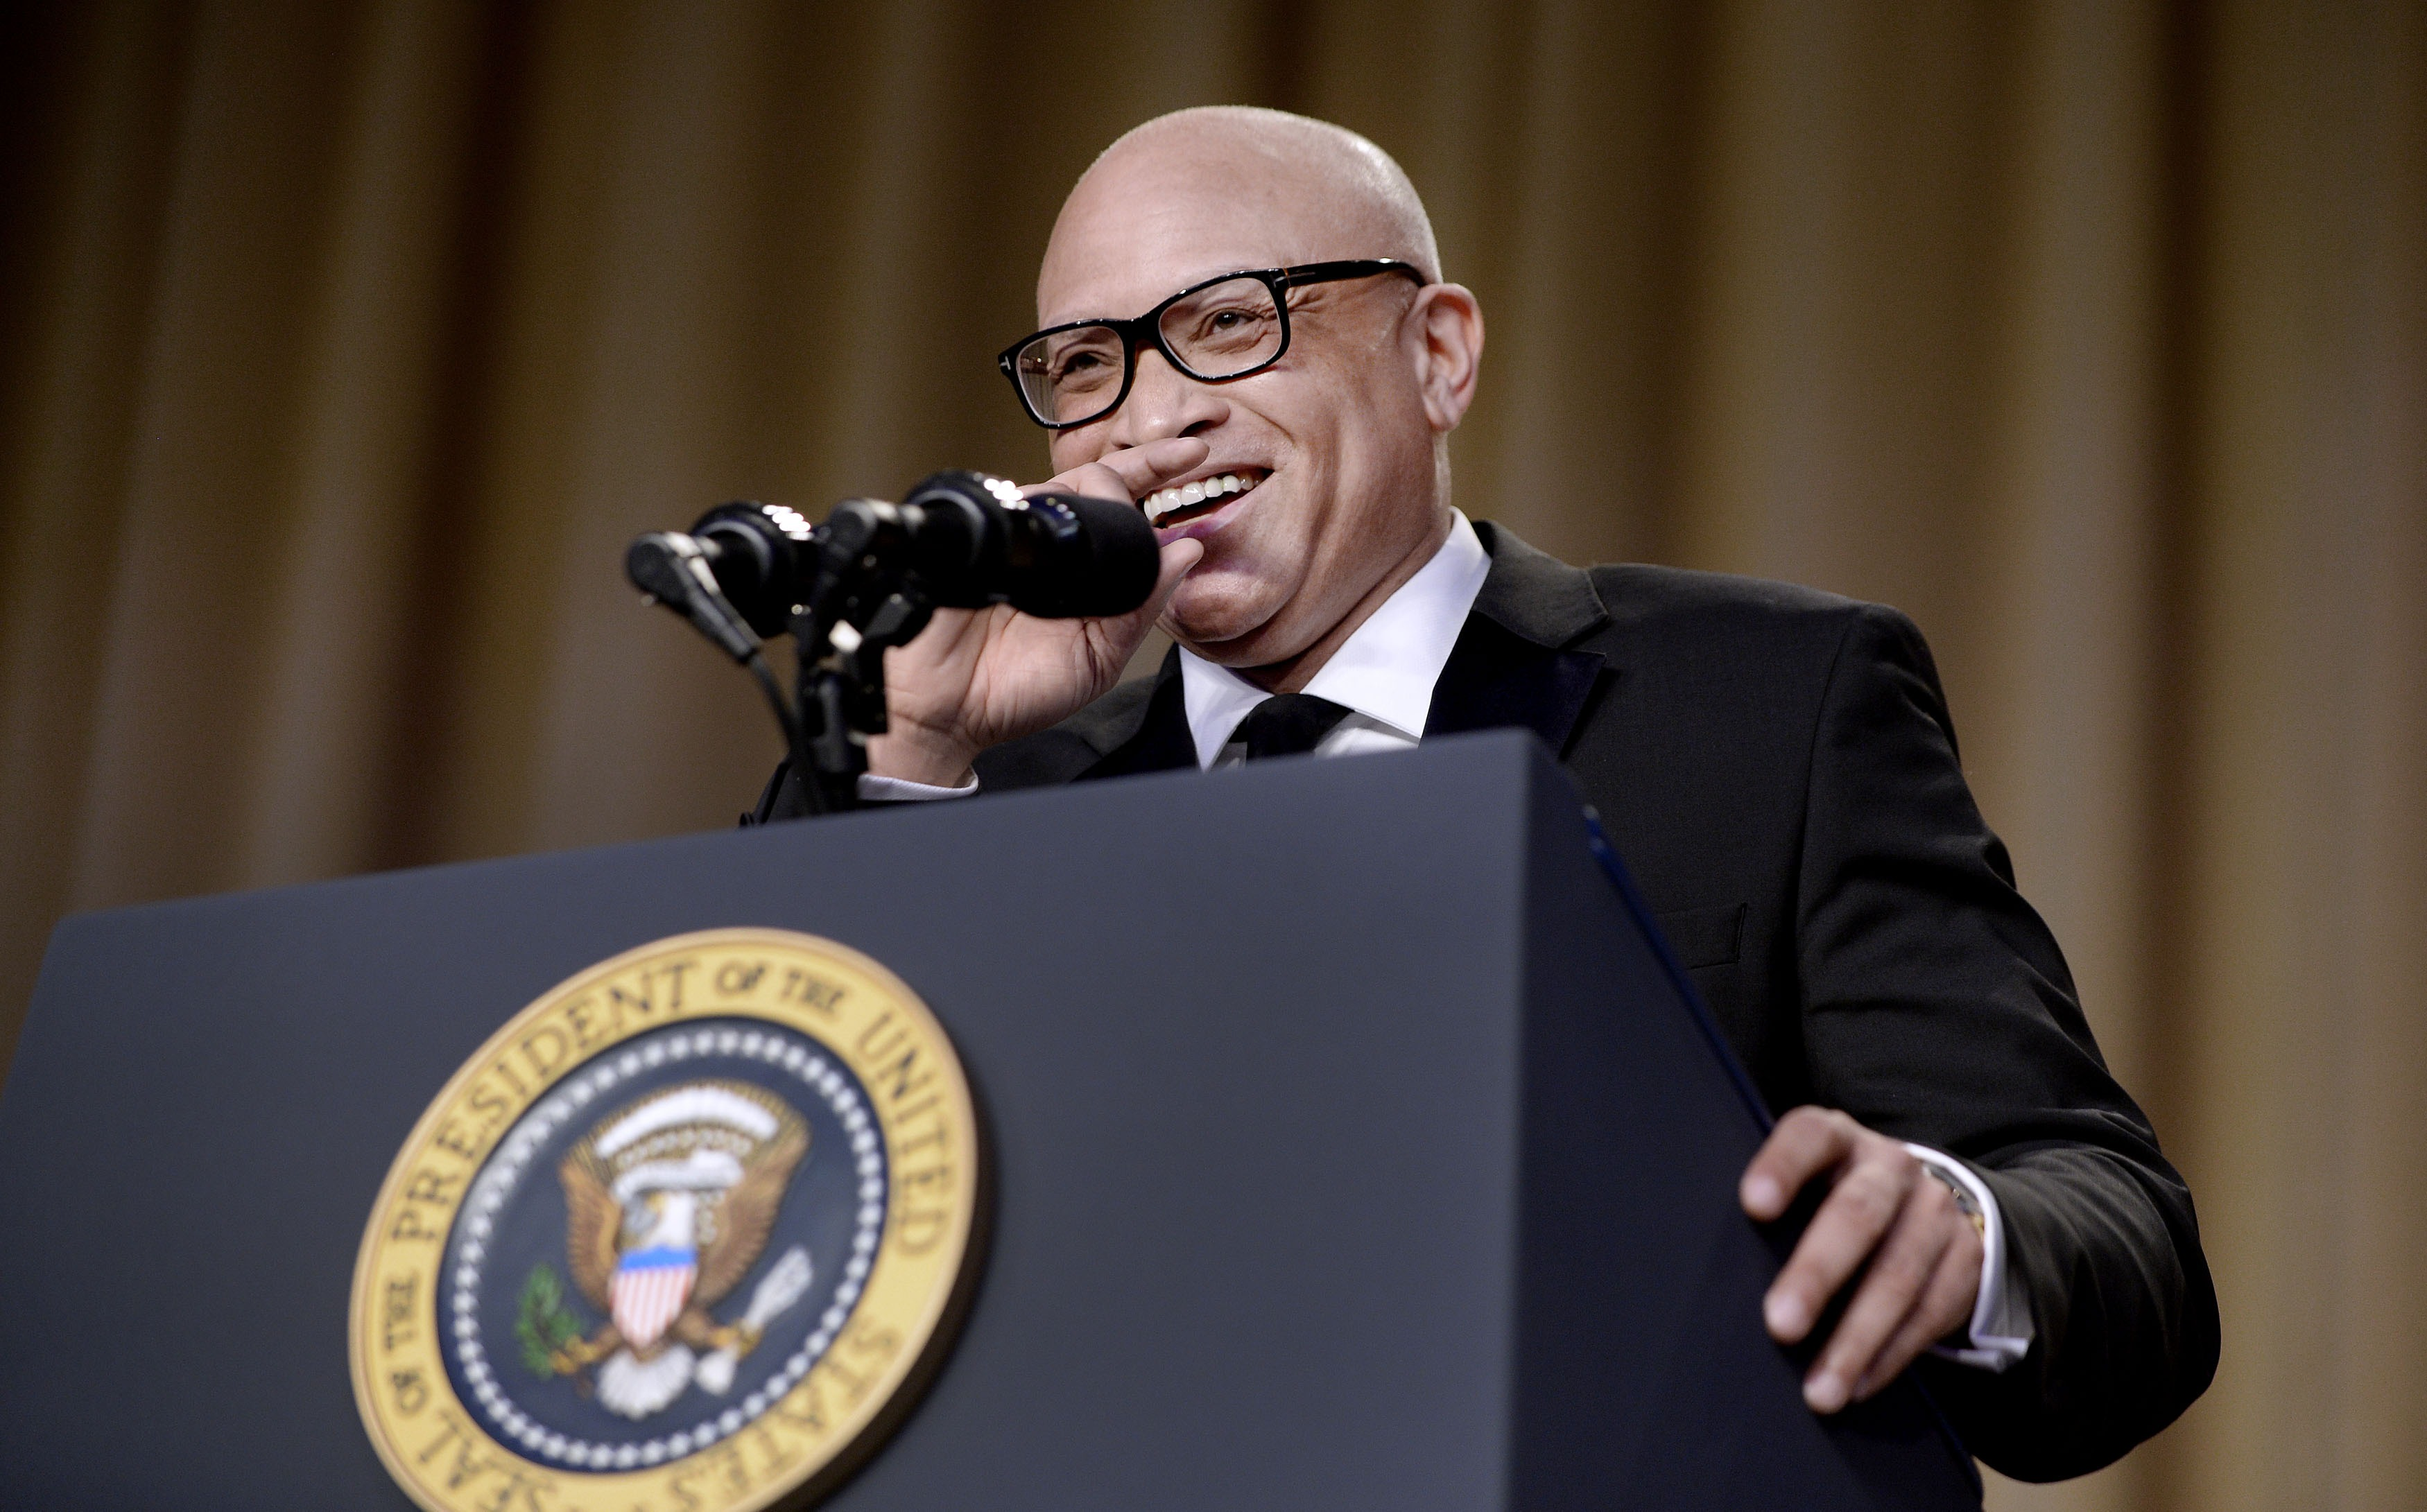 WASHINGTON, DC - APRIL 30: (AFP OUT) Comedian Larry Wilmore speaks during the White House Correspondents' Association annual dinner on April 30, 2016 at the Washington Hilton hotel in Washington.This is President Obama's eighth and final White House Correspondents' Association dinner (Photo by Olivier Douliery-Pool/Getty Images)